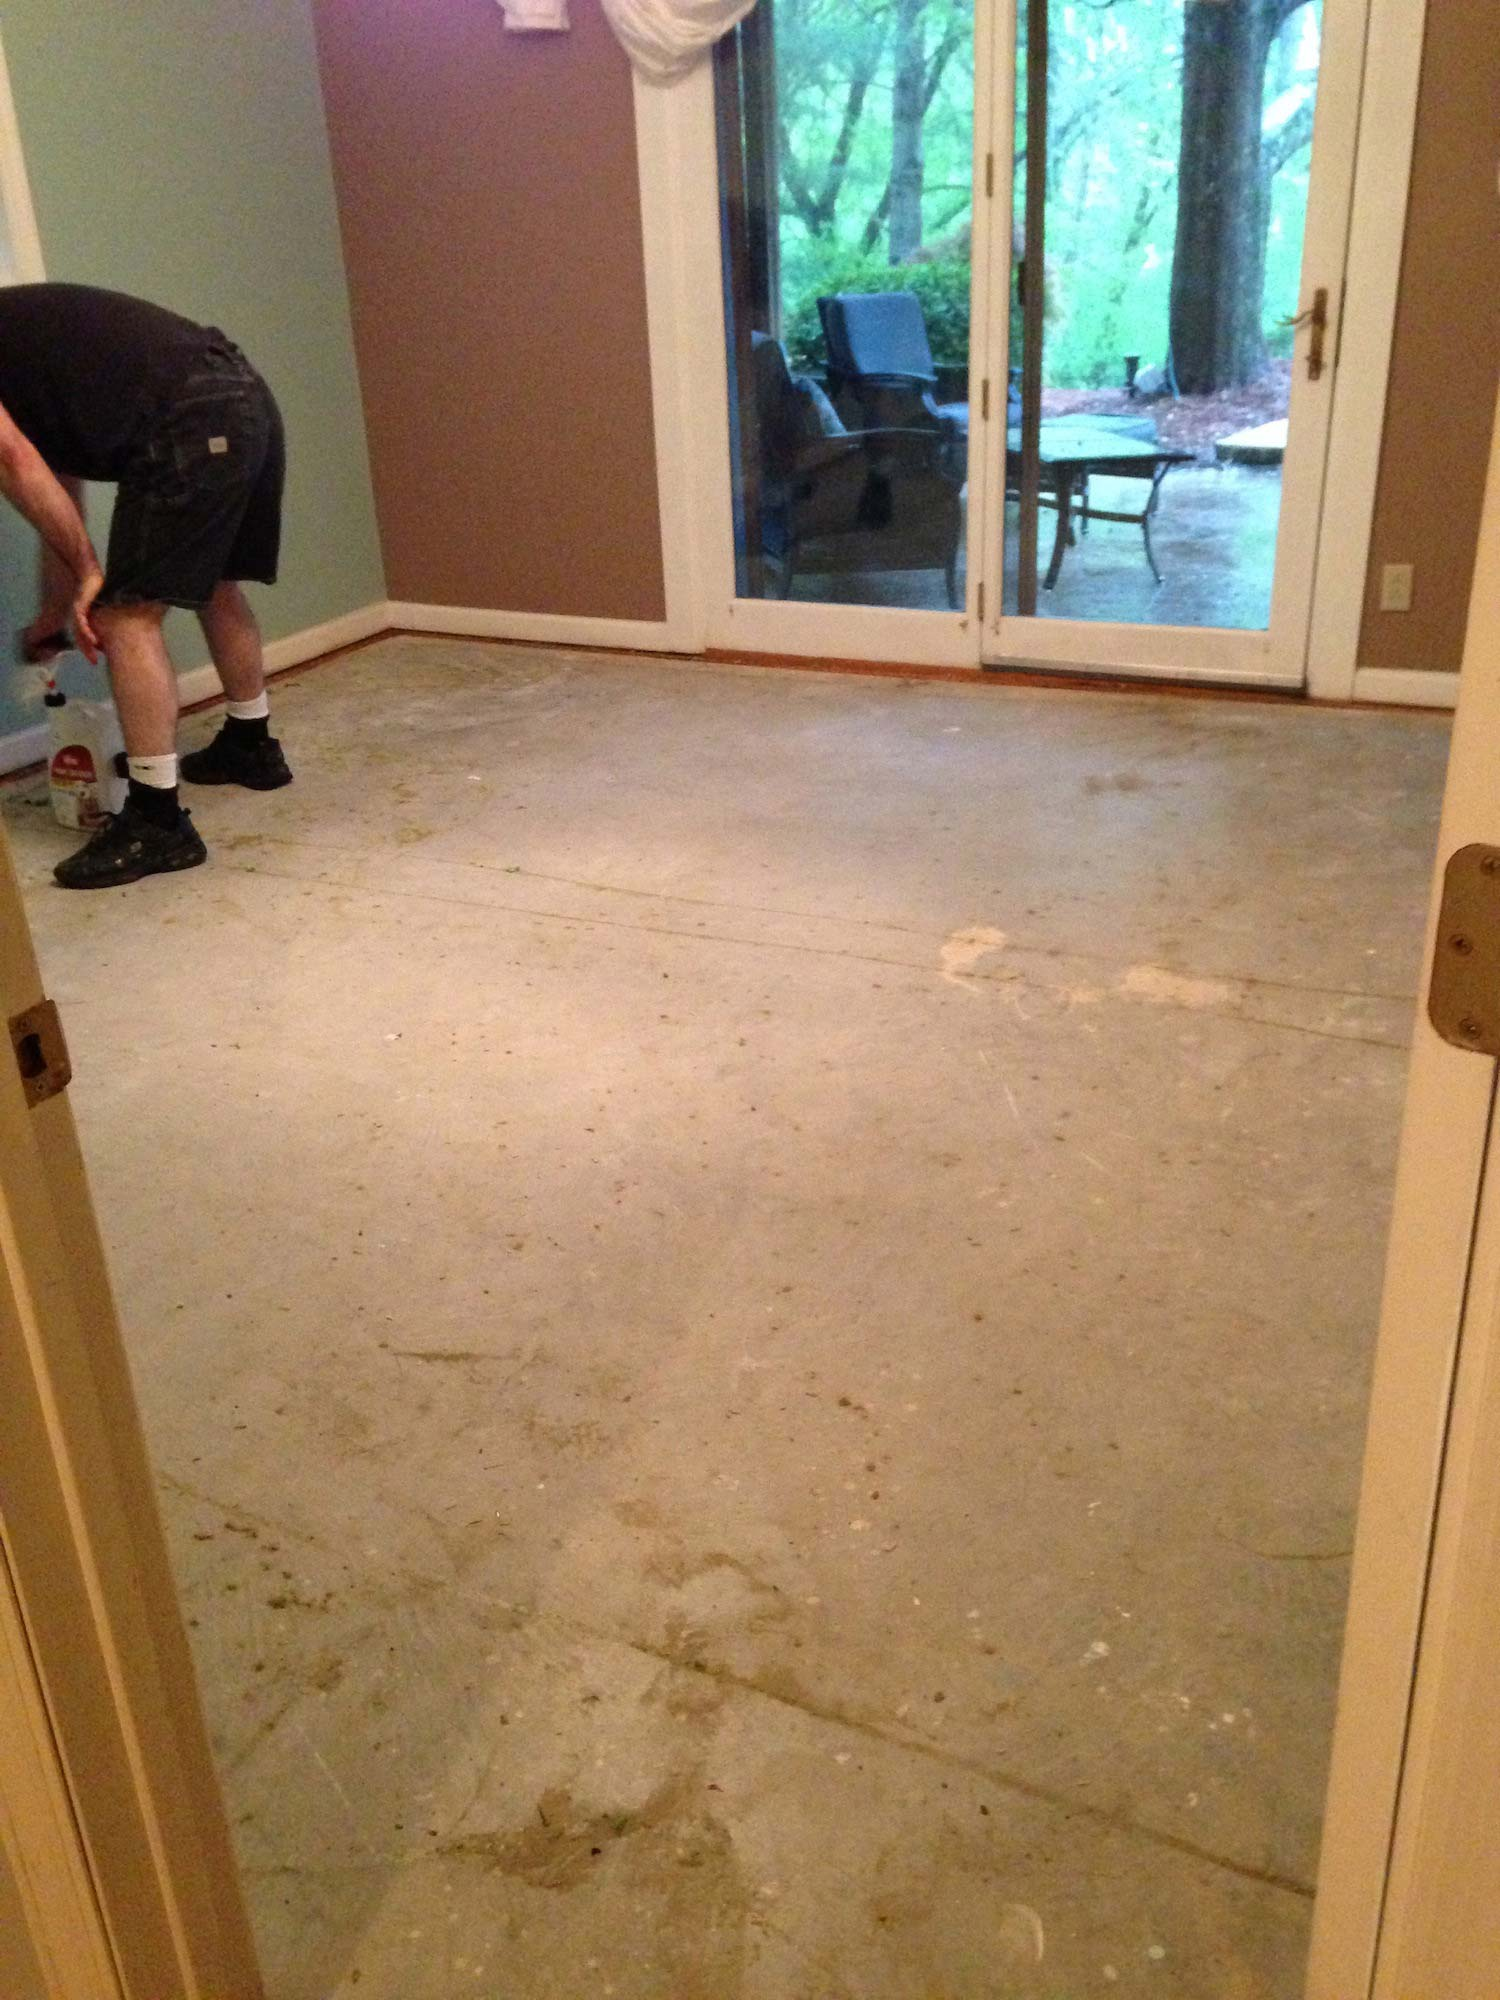 Concrete Sub Floor After Carpet Was Removed